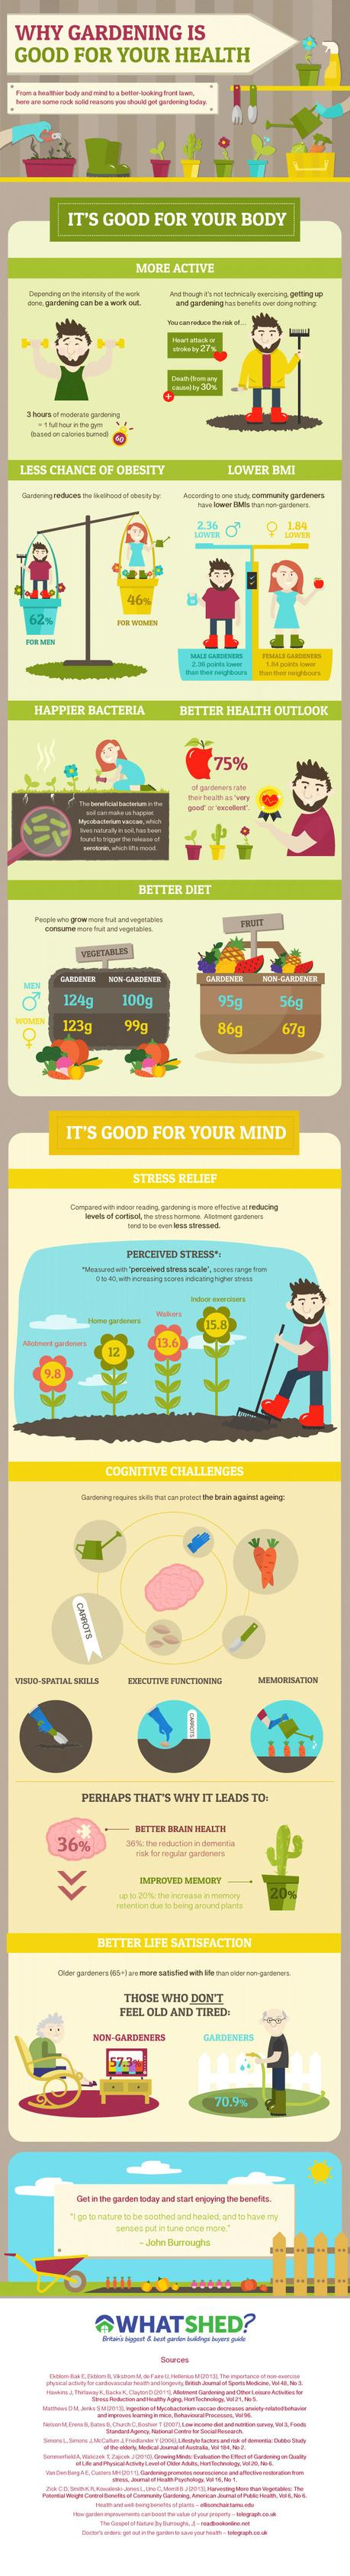 gardening for your health infographic